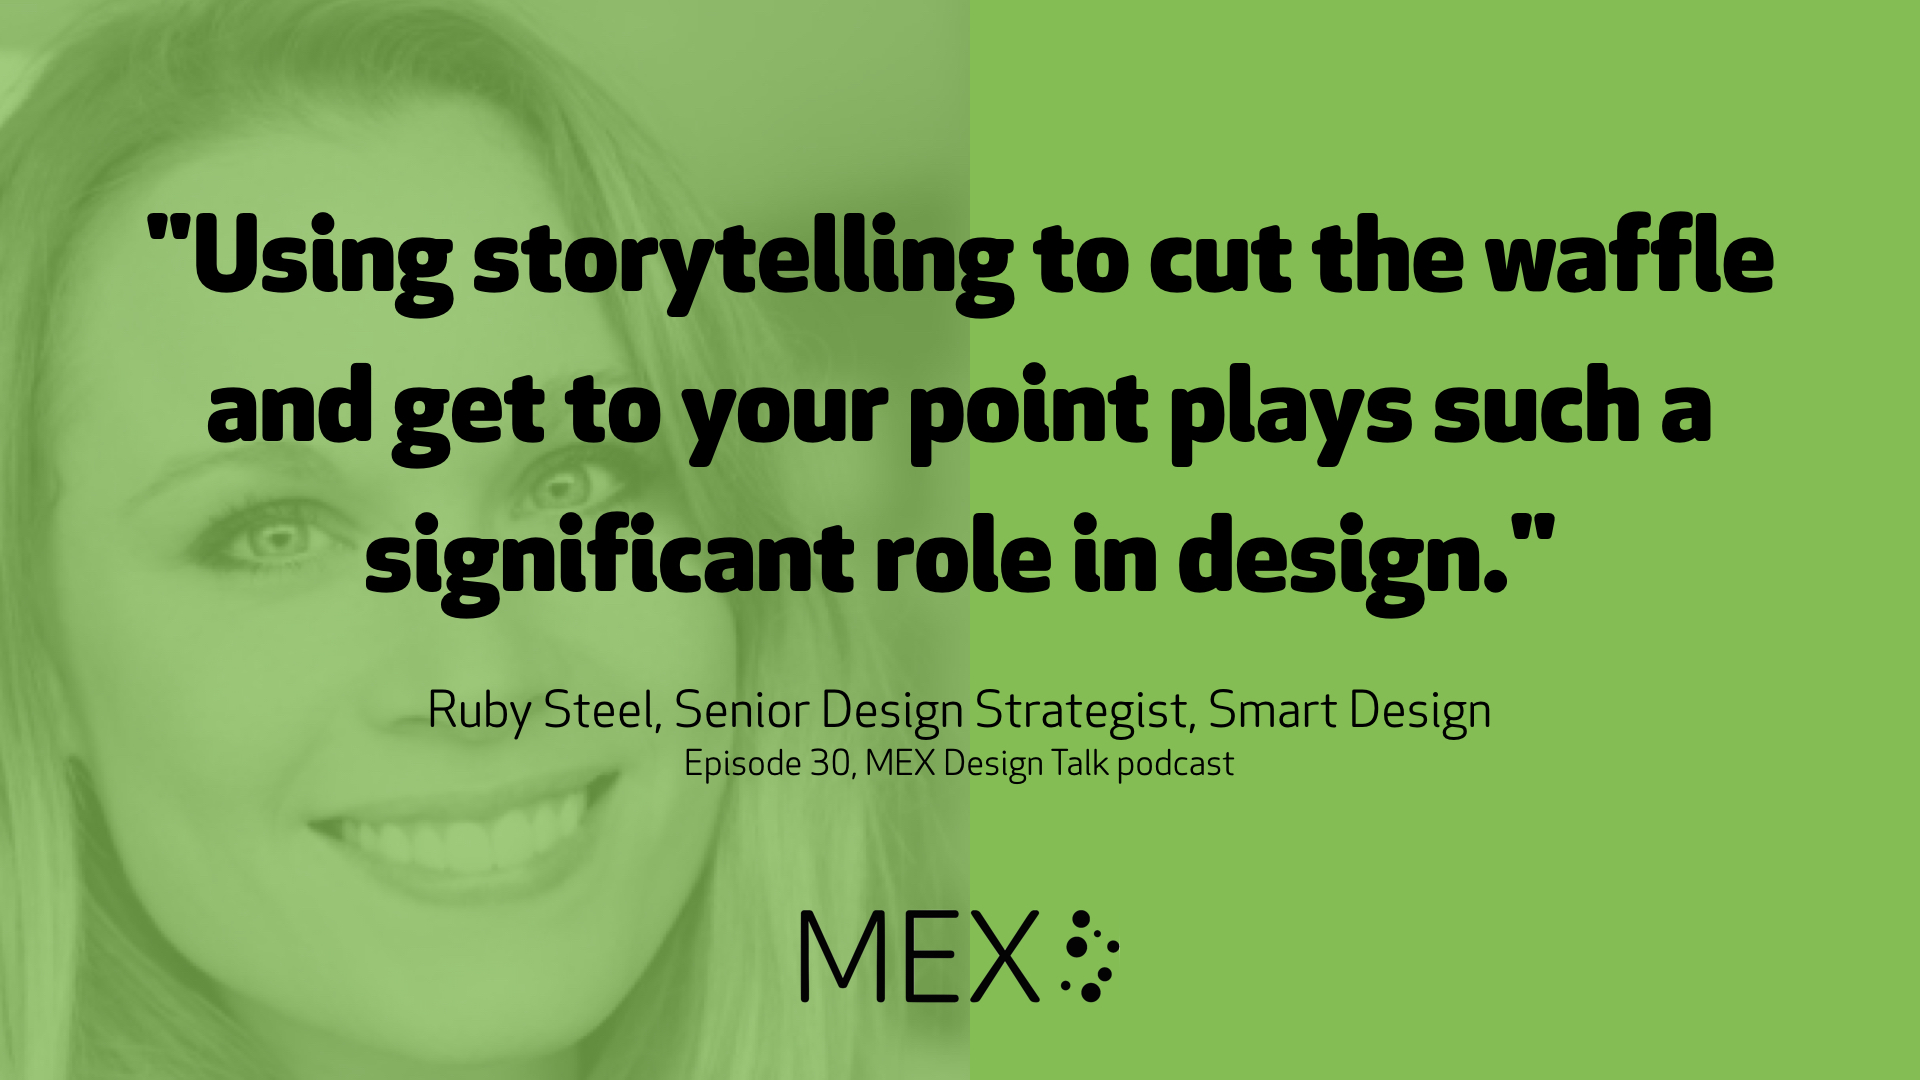 """Using storytelling to cut the waffle and get to your point plays such a significant role in design."" Ruby Steel, Senior Design Strategist, Smart Design Episode 30, MEX Design Talk podcast"